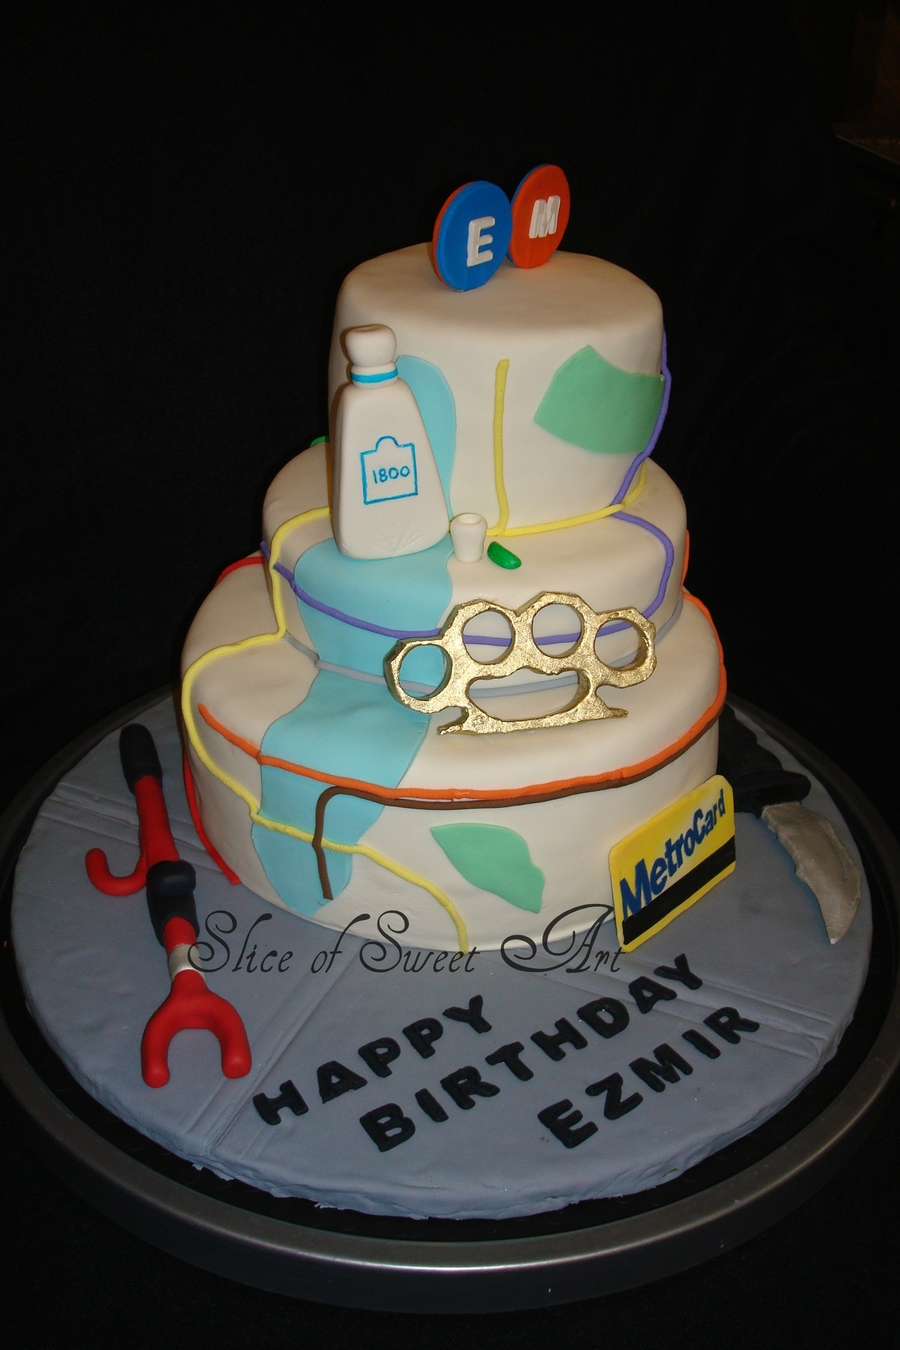 Stupendous Nyc Mta Inspired Birthday Cake Cakecentral Com Personalised Birthday Cards Paralily Jamesorg